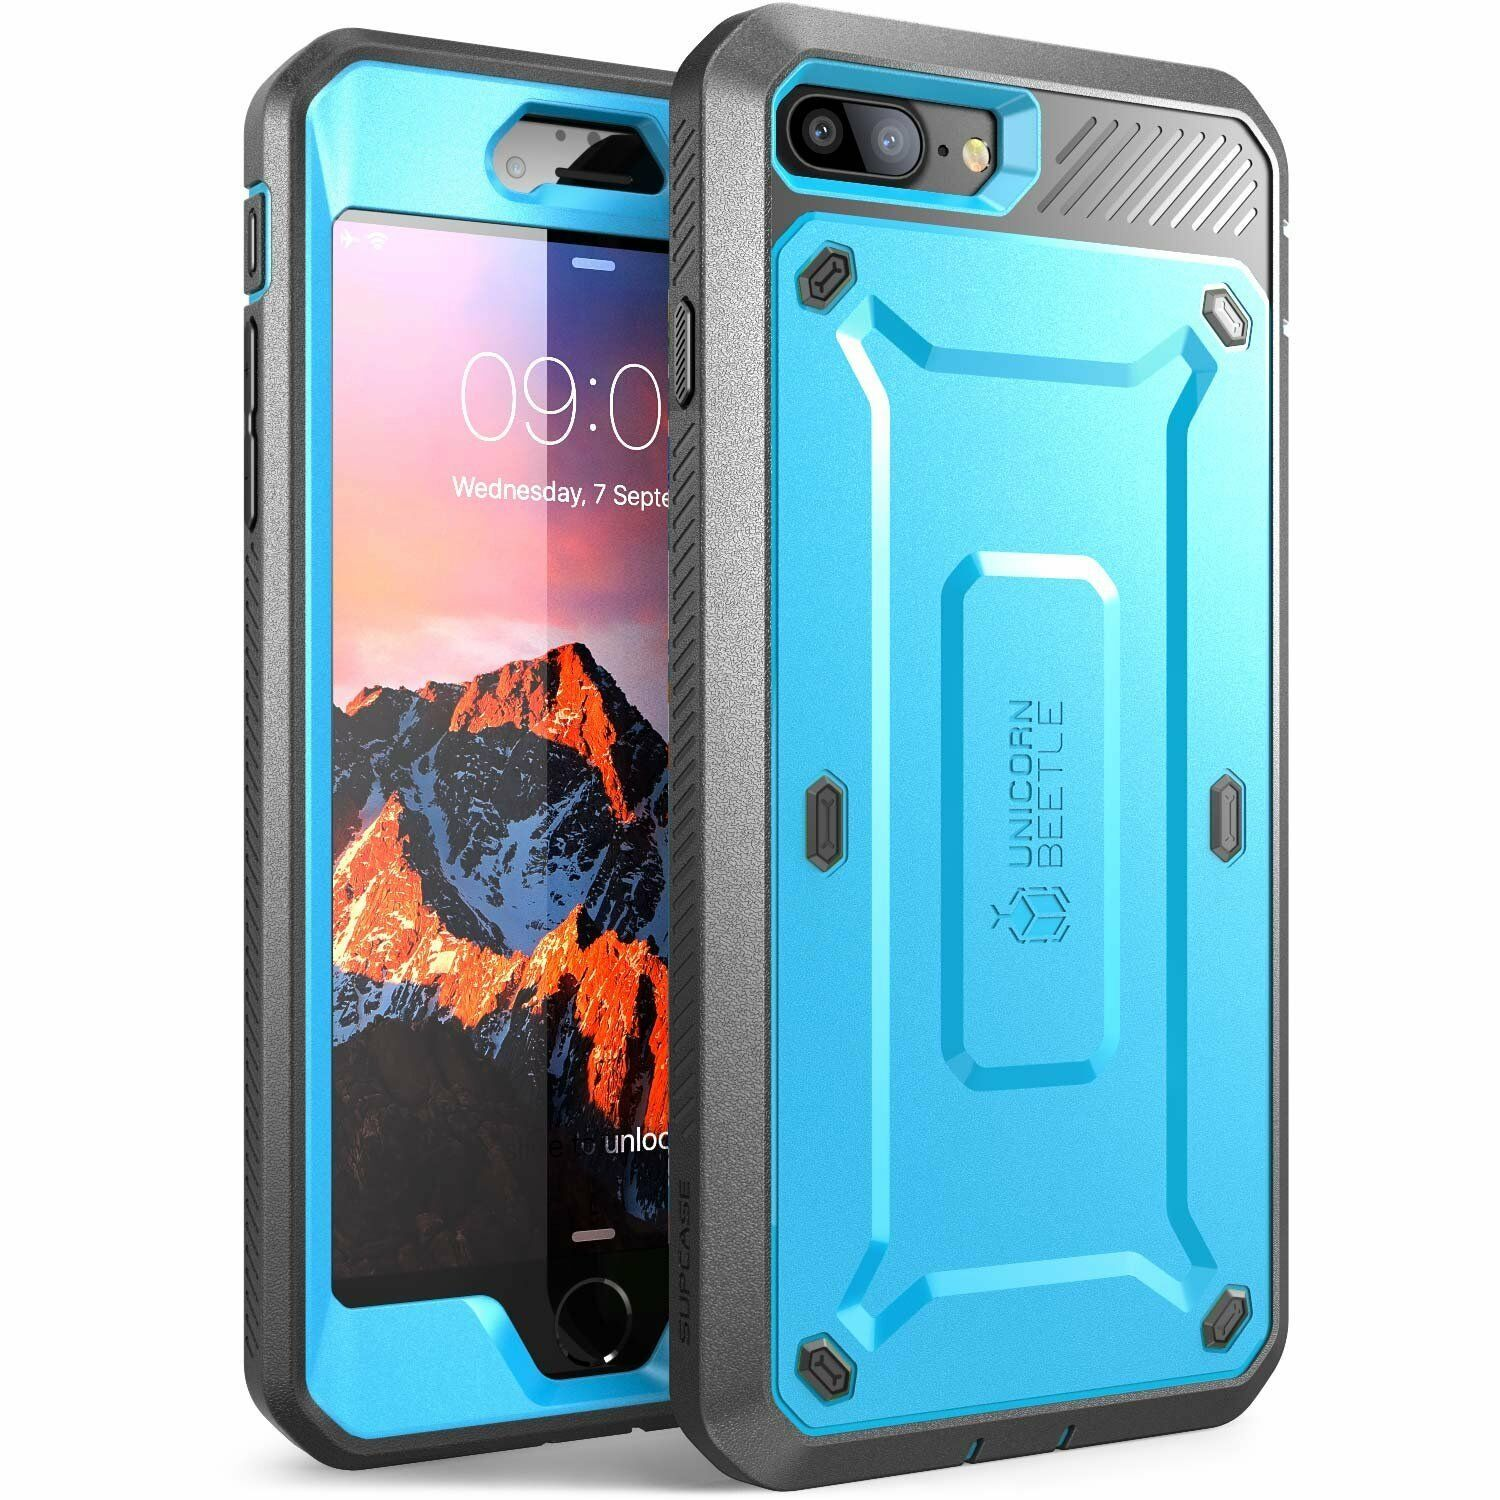 Apple iPhone Case Supcase UBPro Full Body Cover Screen Protector For 5s 6 7 8